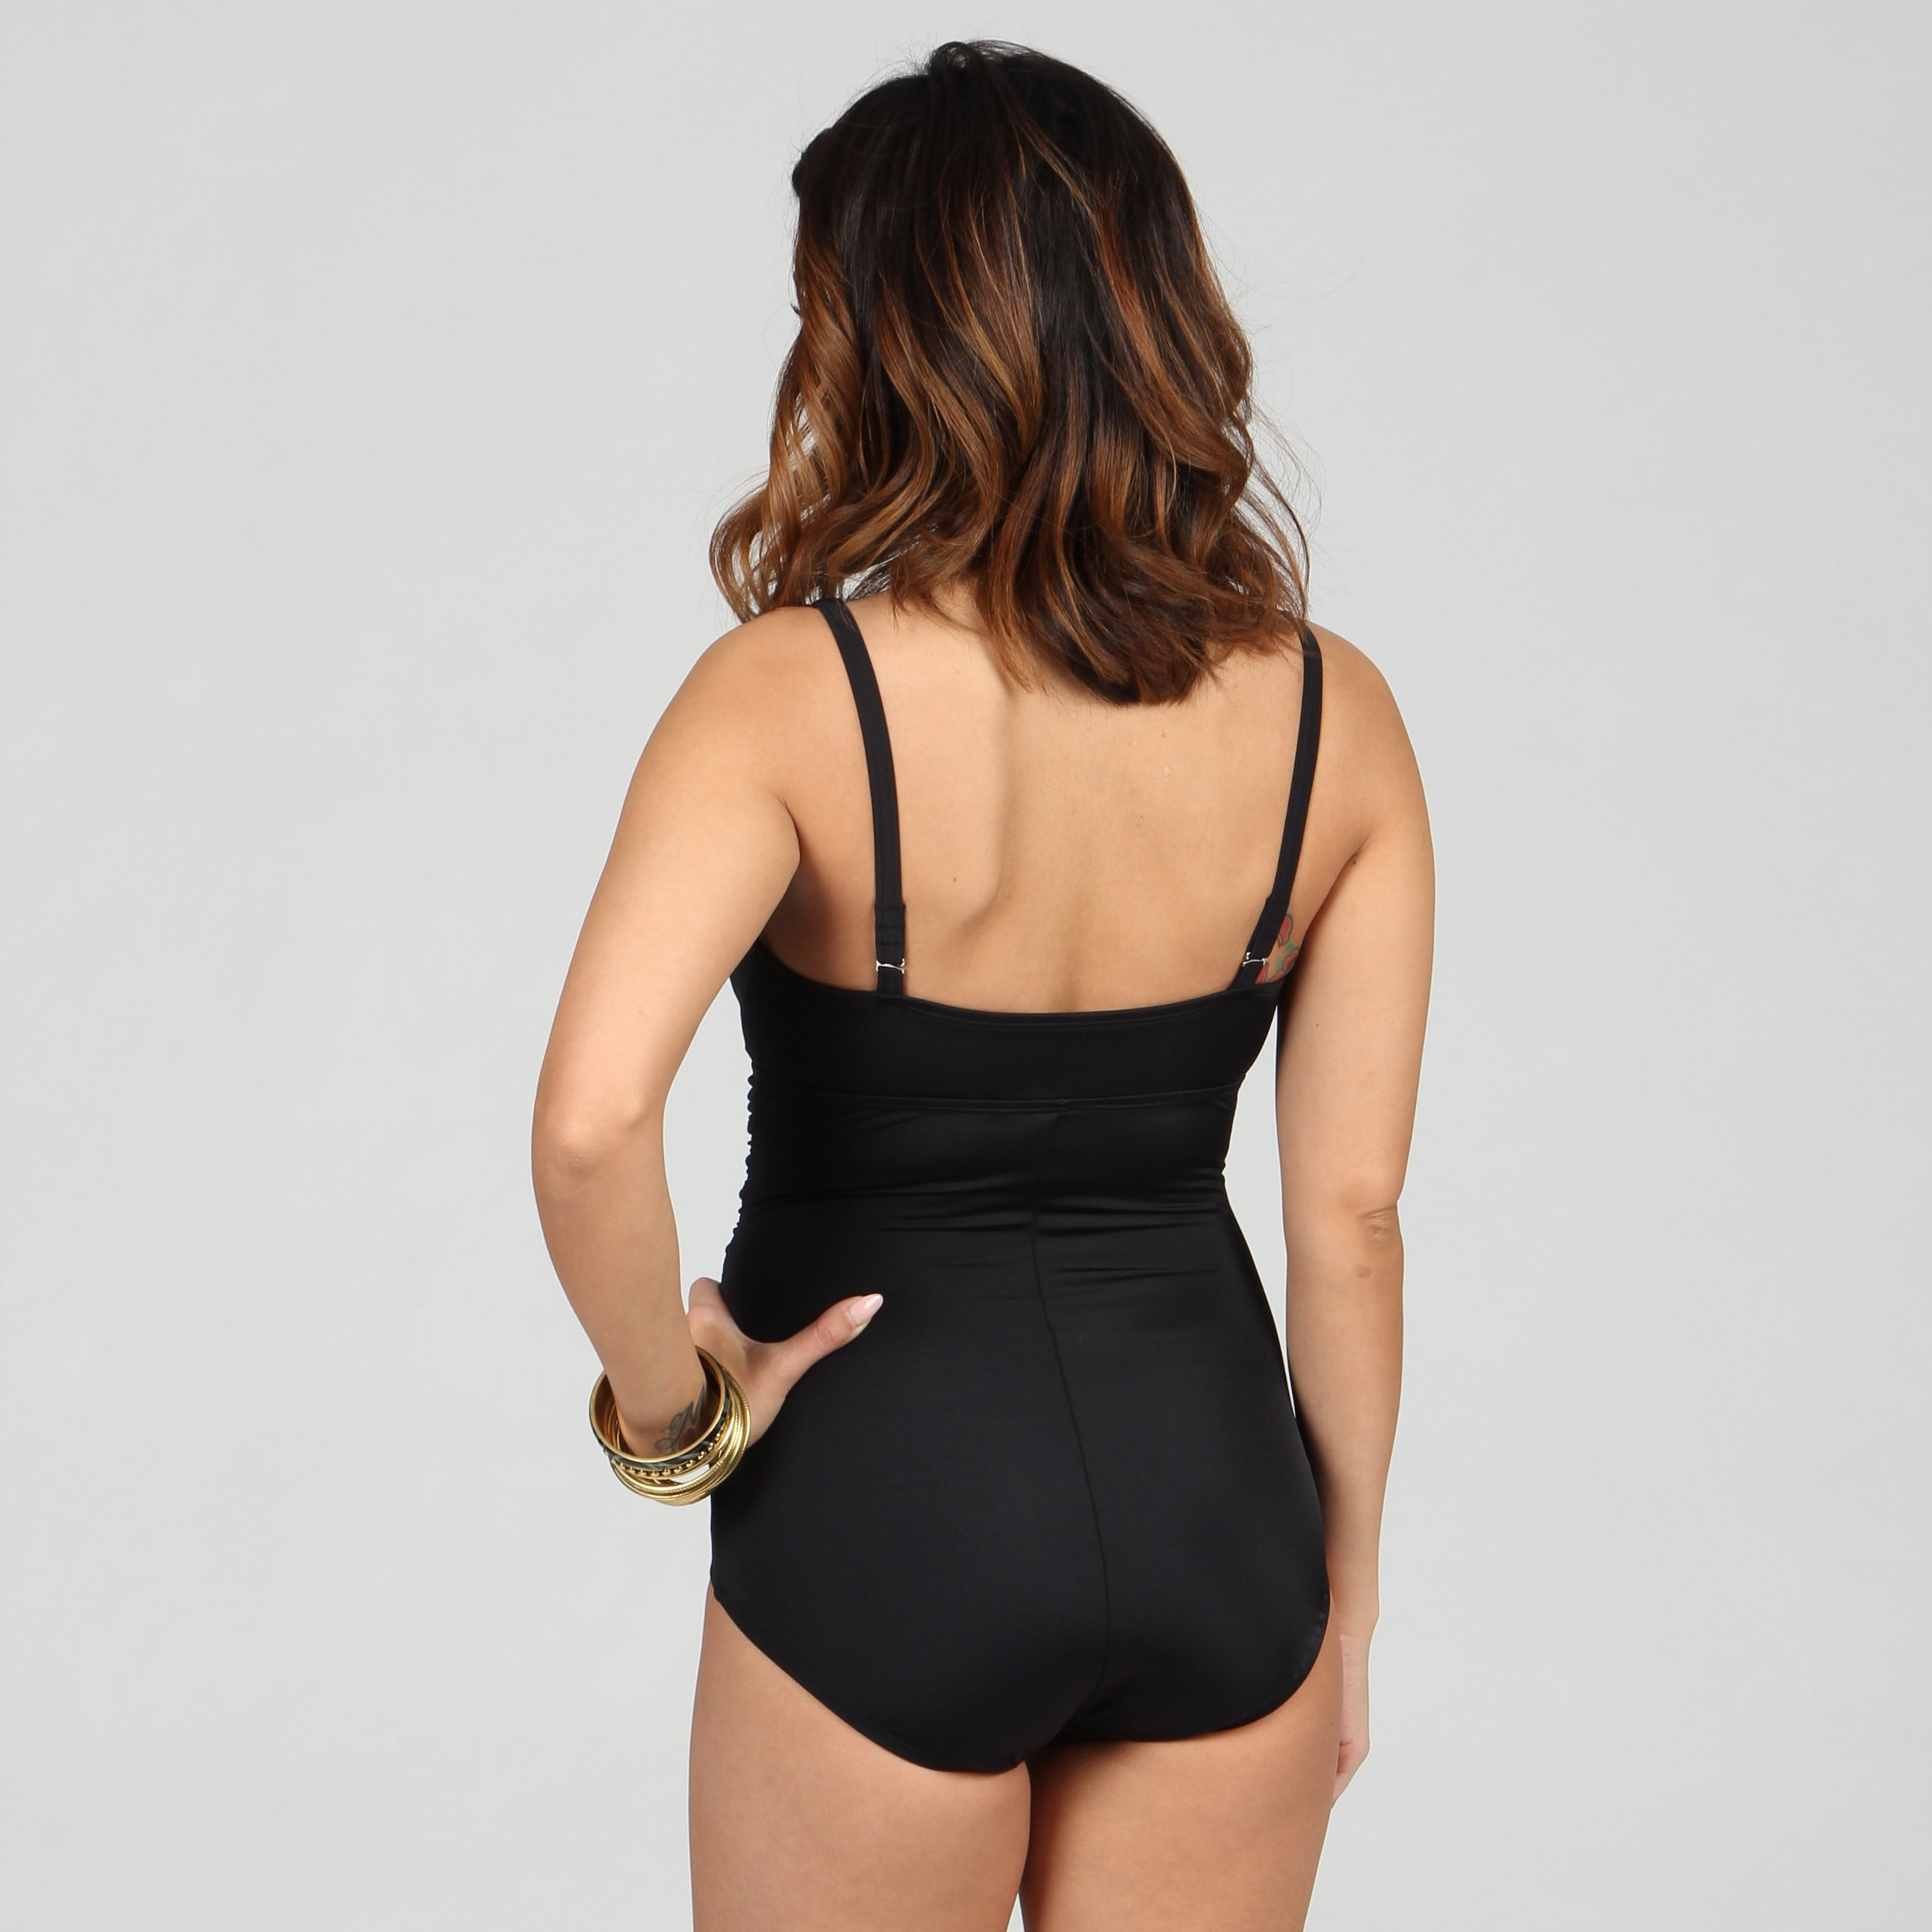 691eb502ccc Shop Jantzen Classic Black Shirred One-piece Swimsuit with Deep V-neck -  Free Shipping Today - Overstock - 6625348